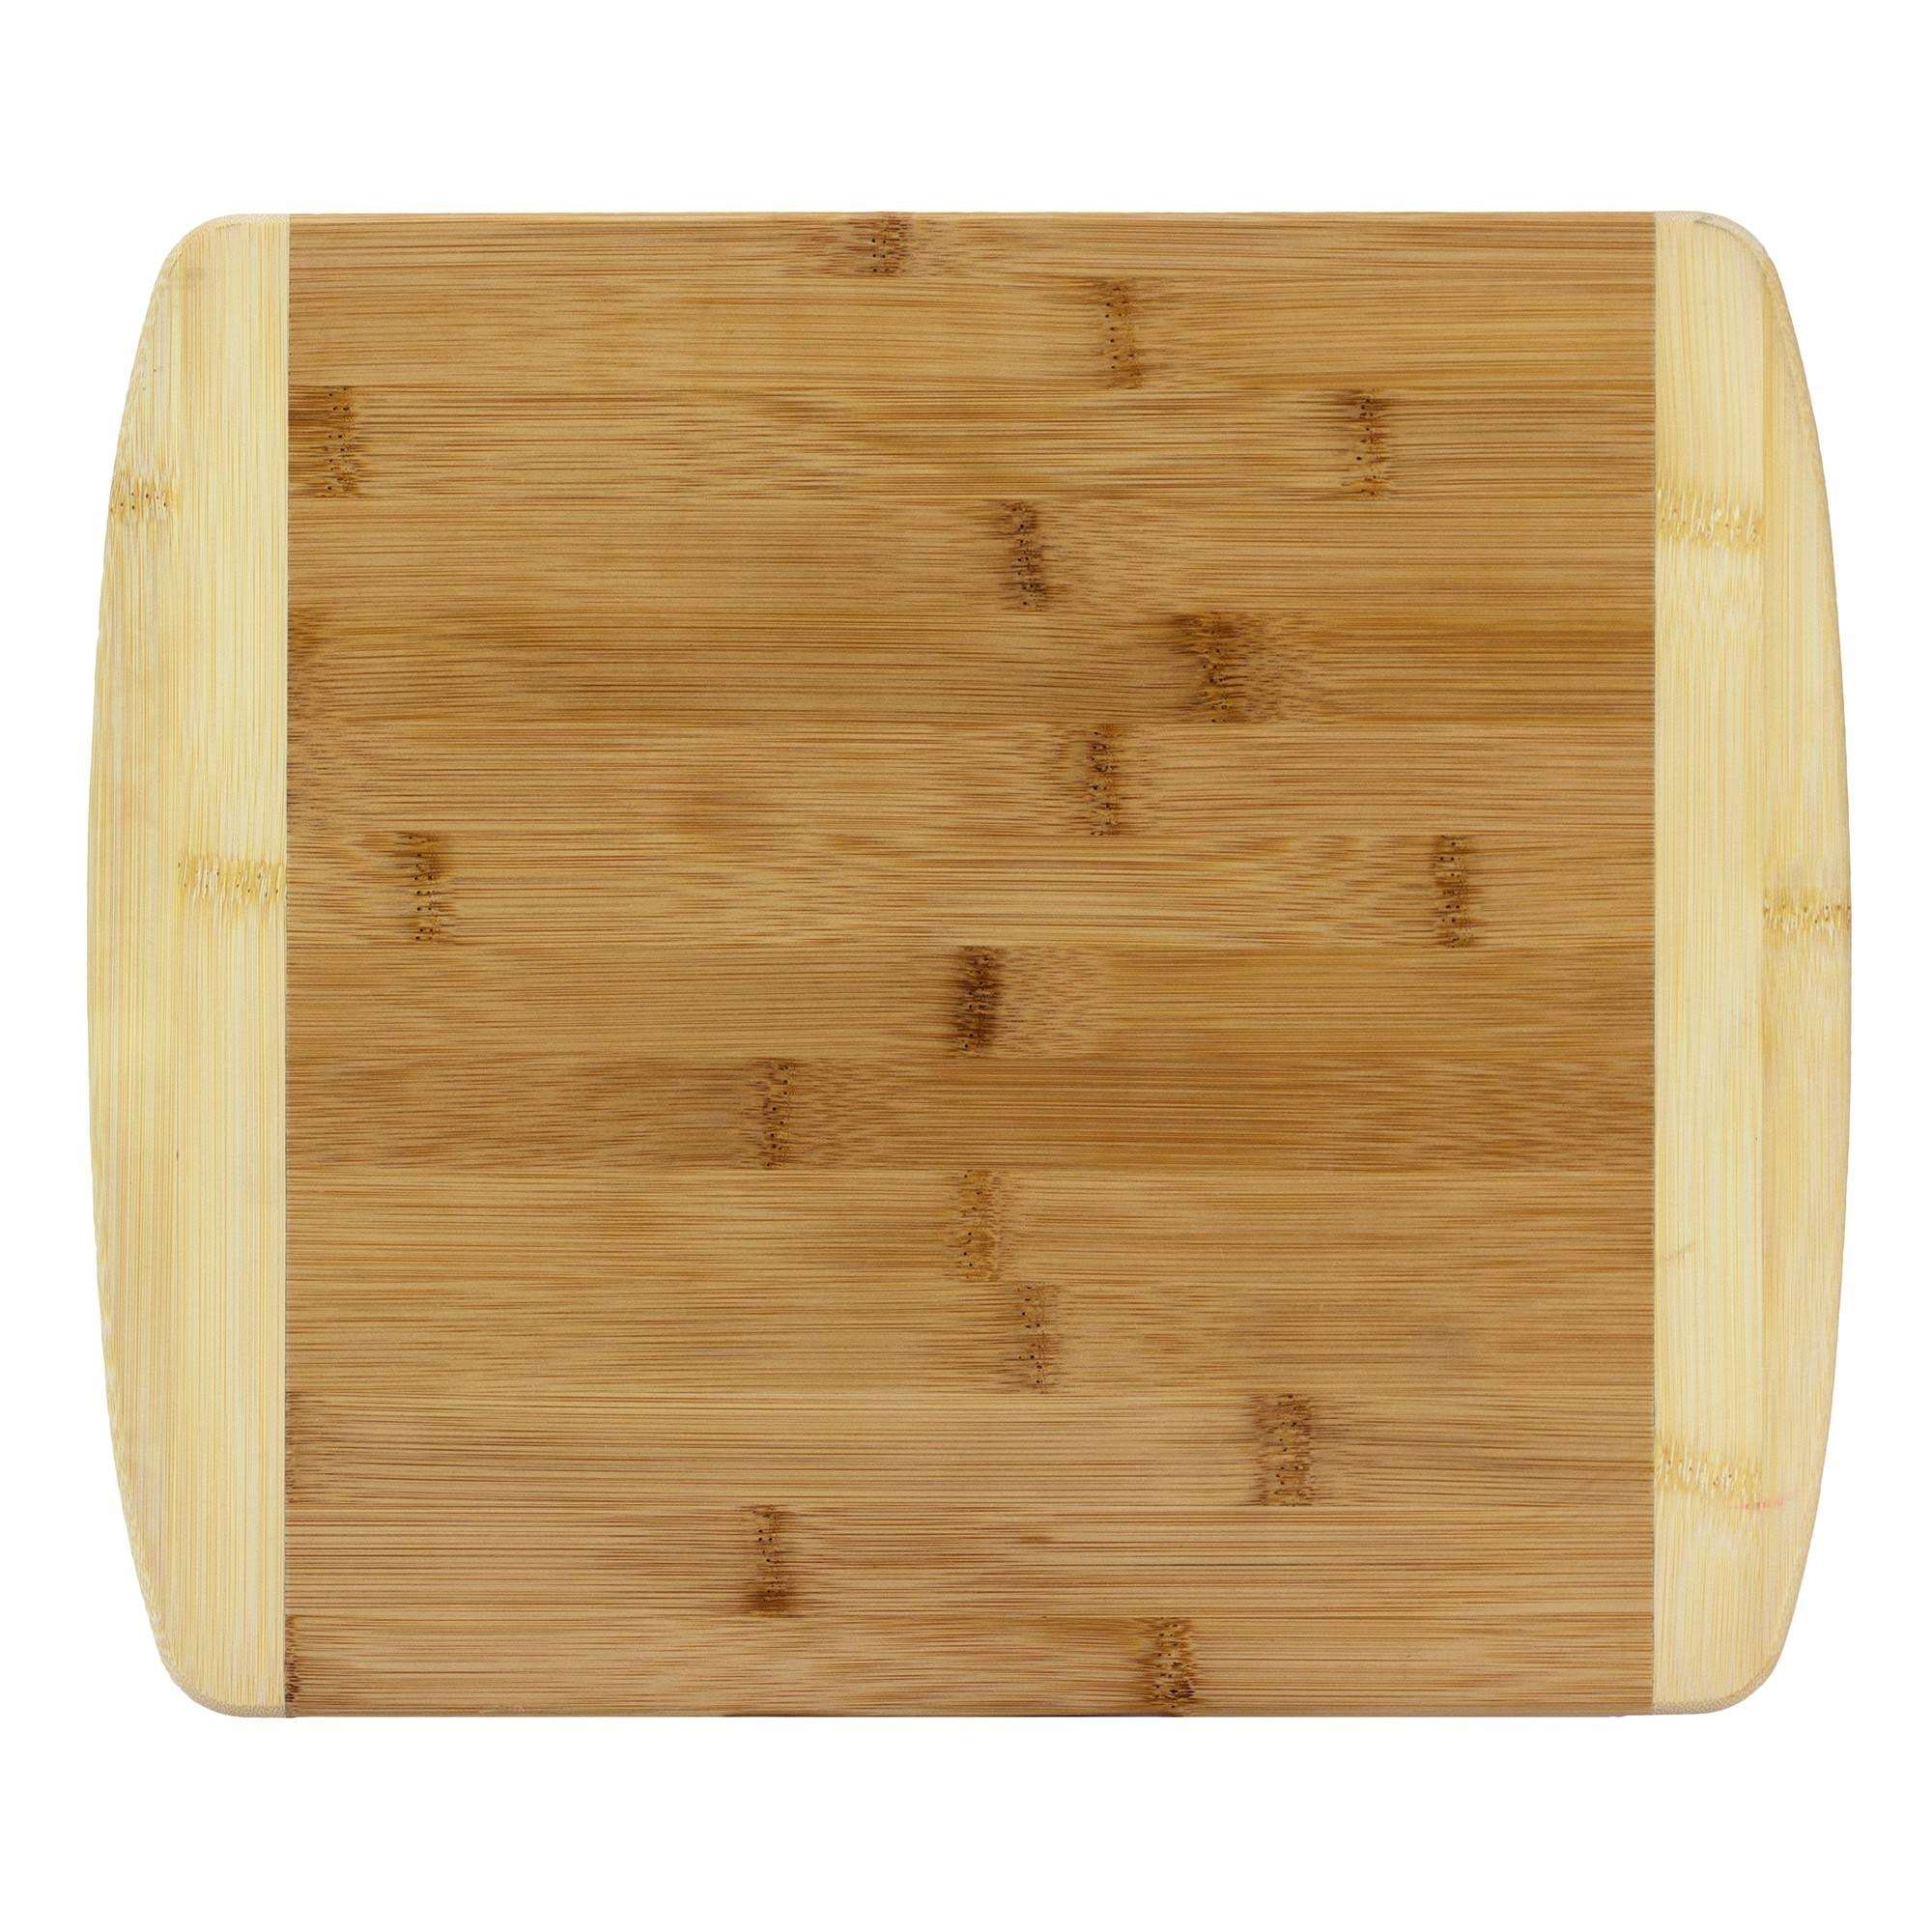 Totally Bamboo 2-Tone Cutting Board 13.5 inch x 11.5 inch